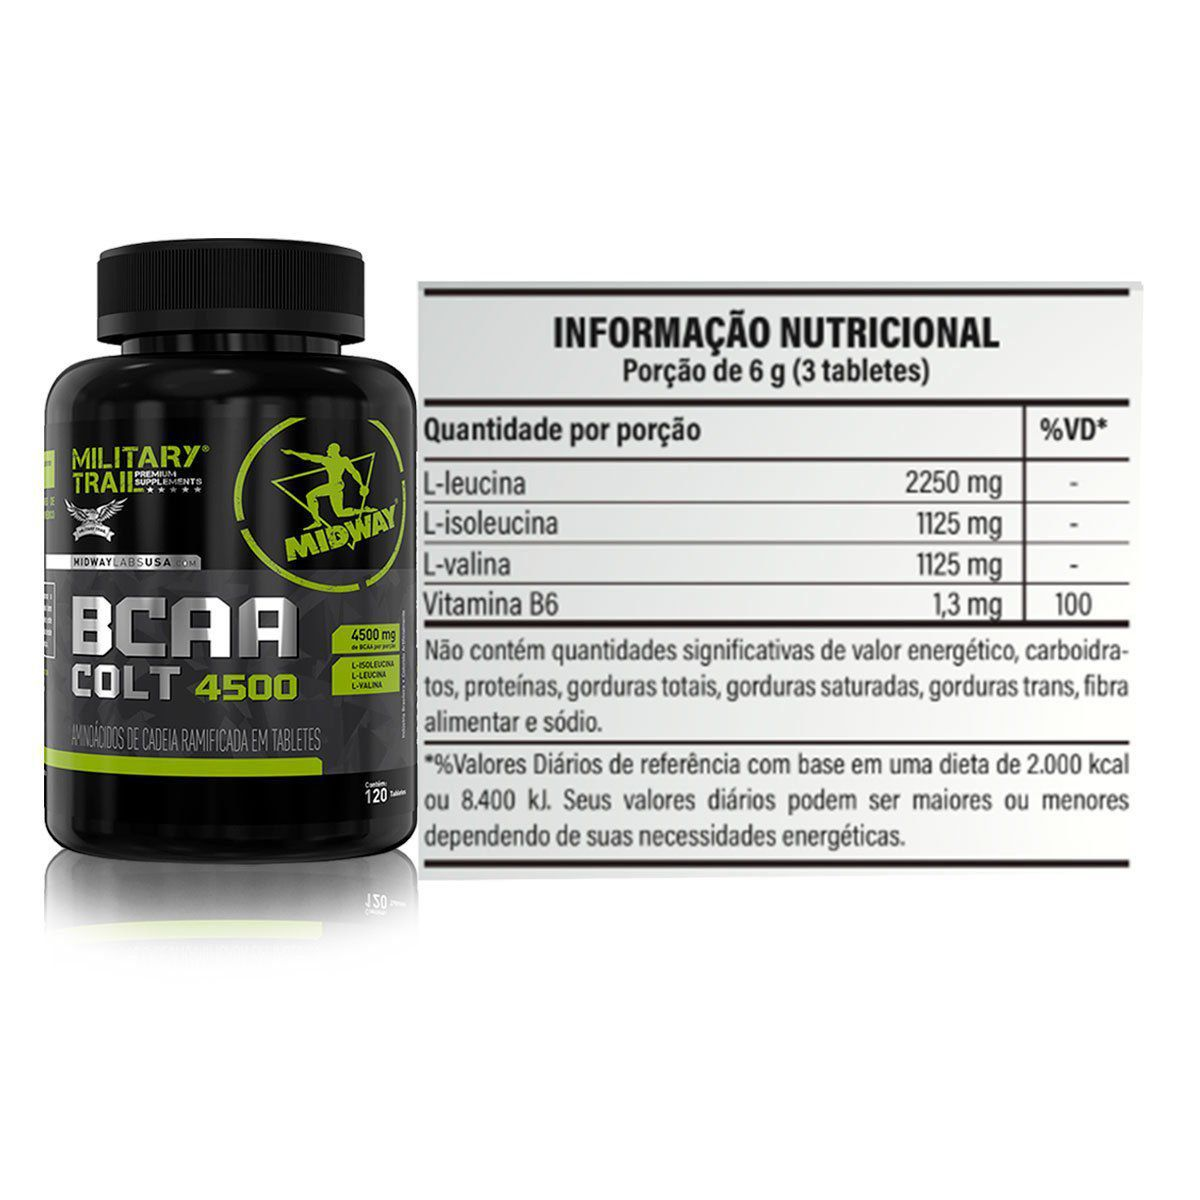 BCAA Colt Ultra Concentrado Military Trail 120 Caps - Midway